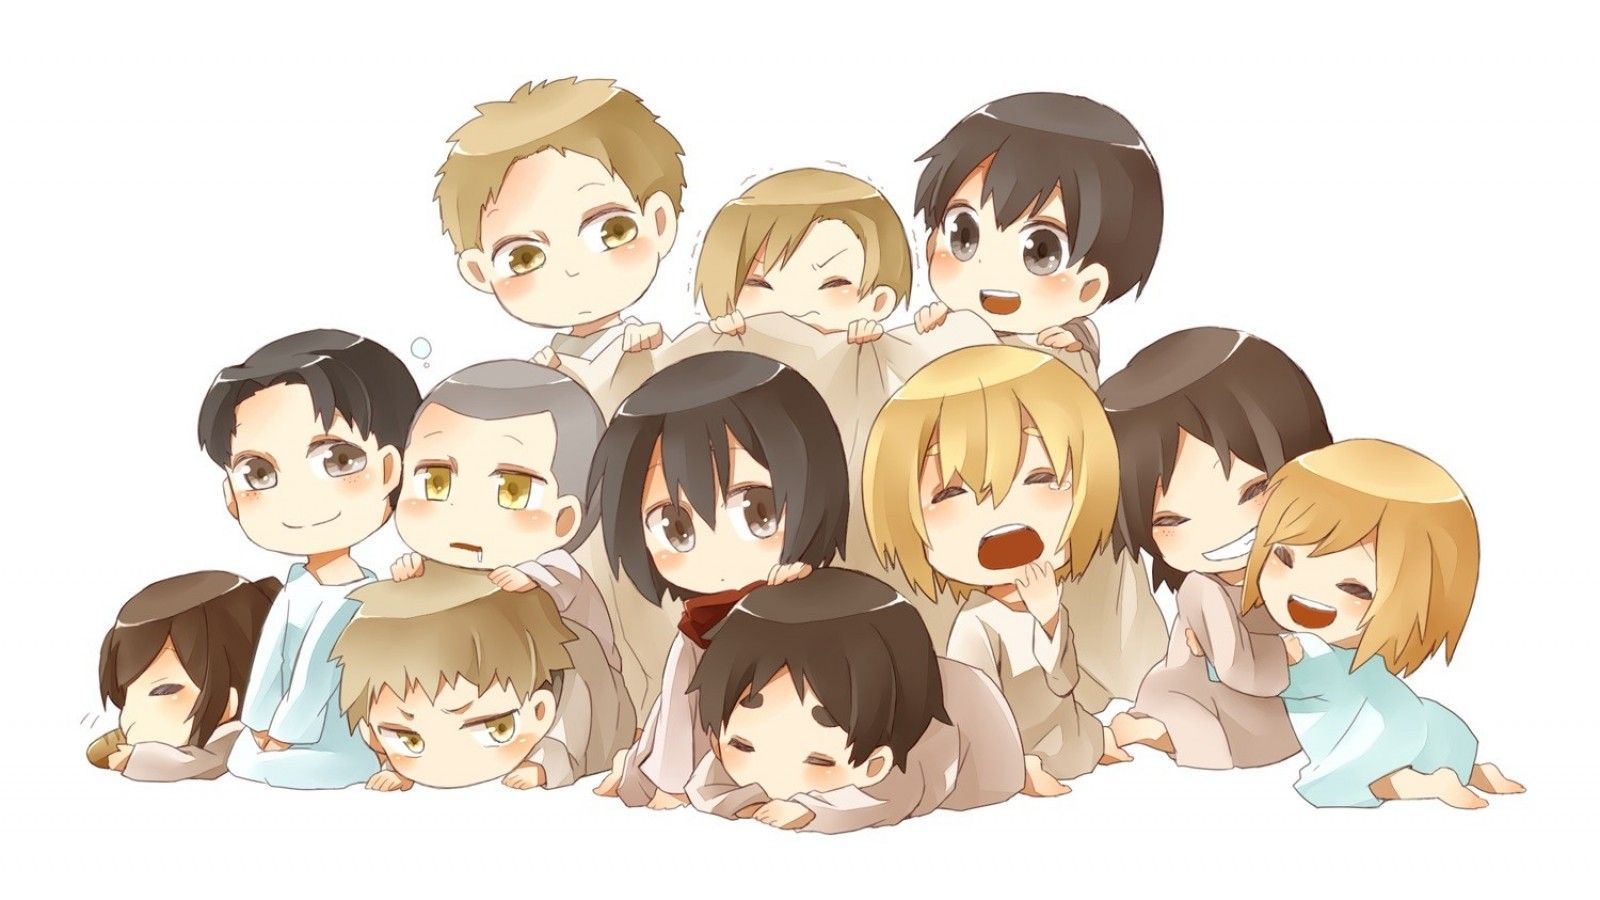 Attack On Titan Chibi Wallpapers Top Free Attack On Titan Chibi Backgrounds Wallpaperaccess